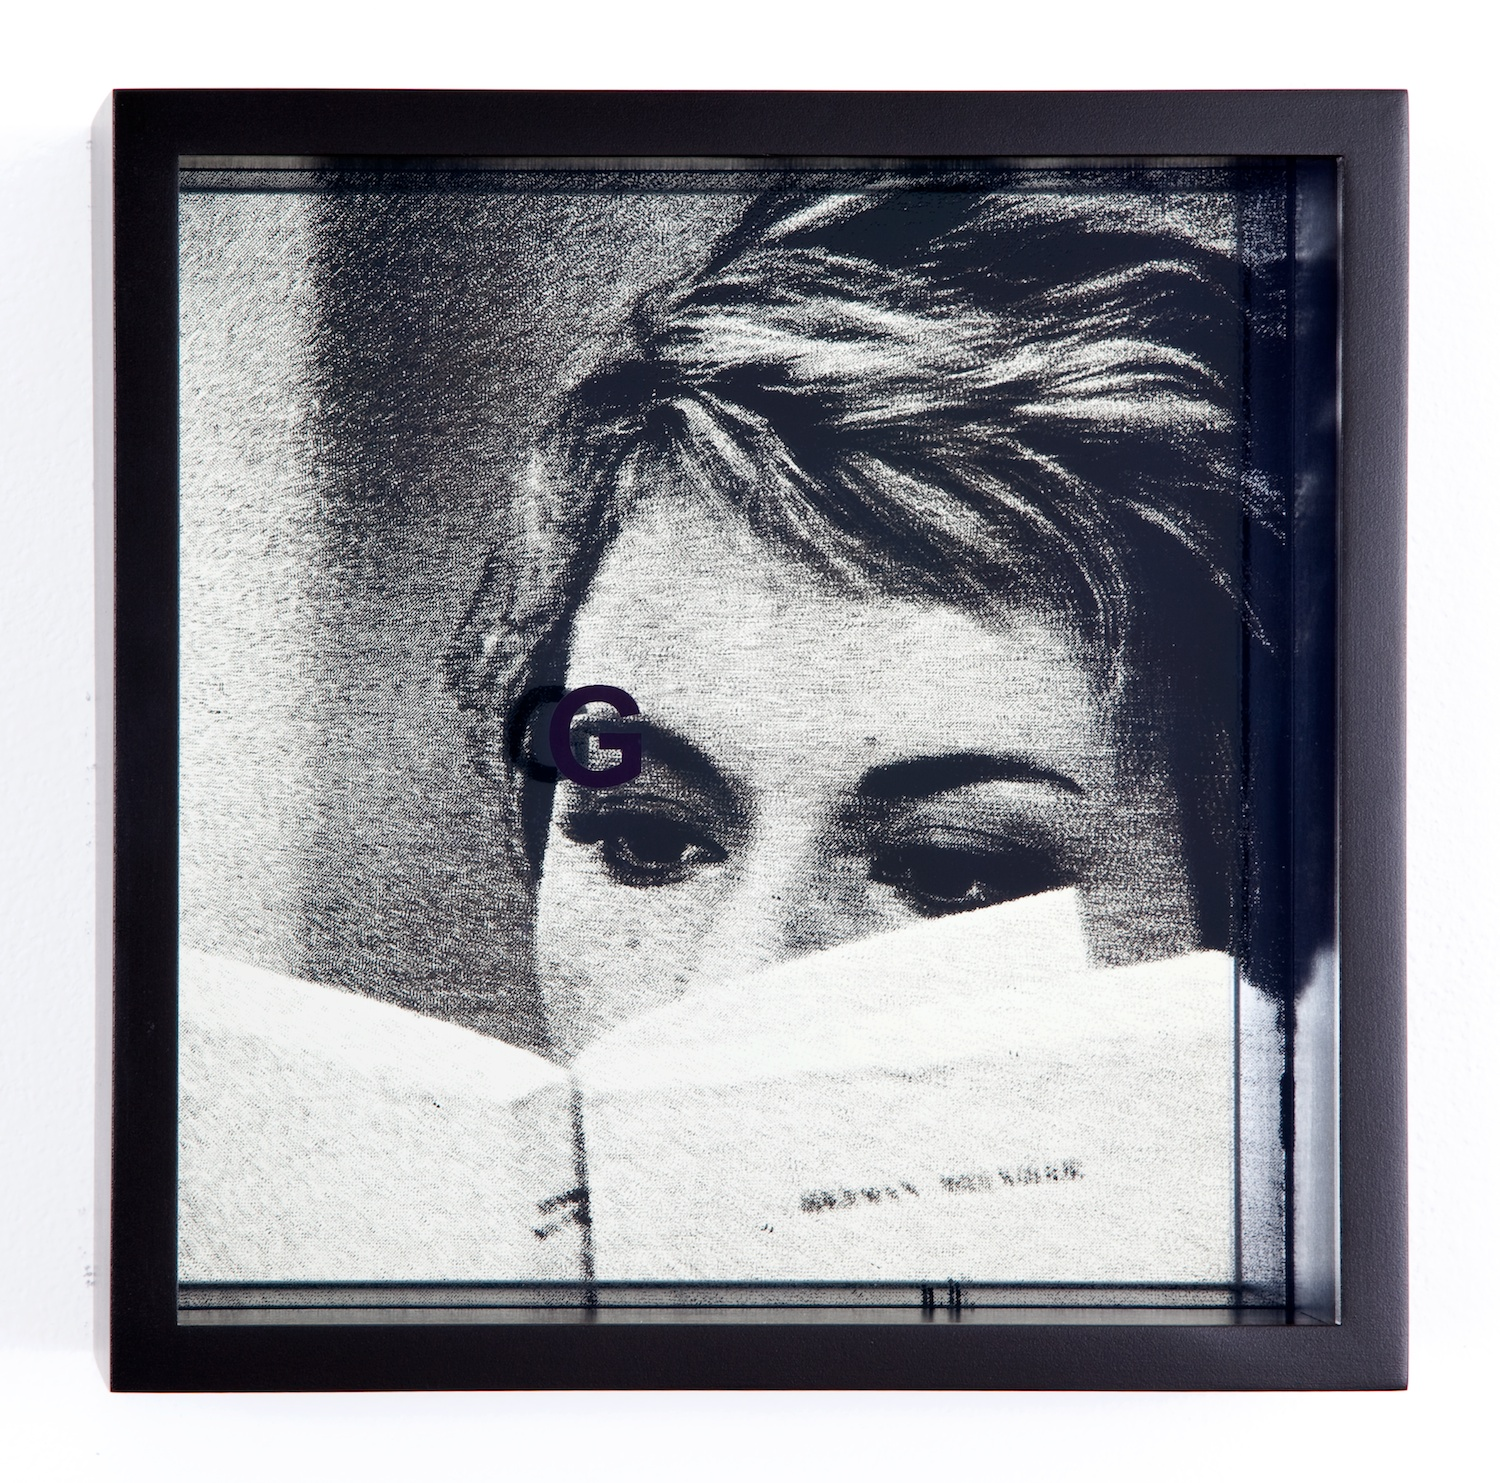 Adam Pendleton  System of Display, G (AGAINST/Jean-Luc Godard, Le Grand Escroc, episode from Les Plus Belles Escroqueries du Monde, 1964)  2011 Silkscreen on glass and mirror 9 ⅞h x 9 ⅞w x 3d in AdamP010